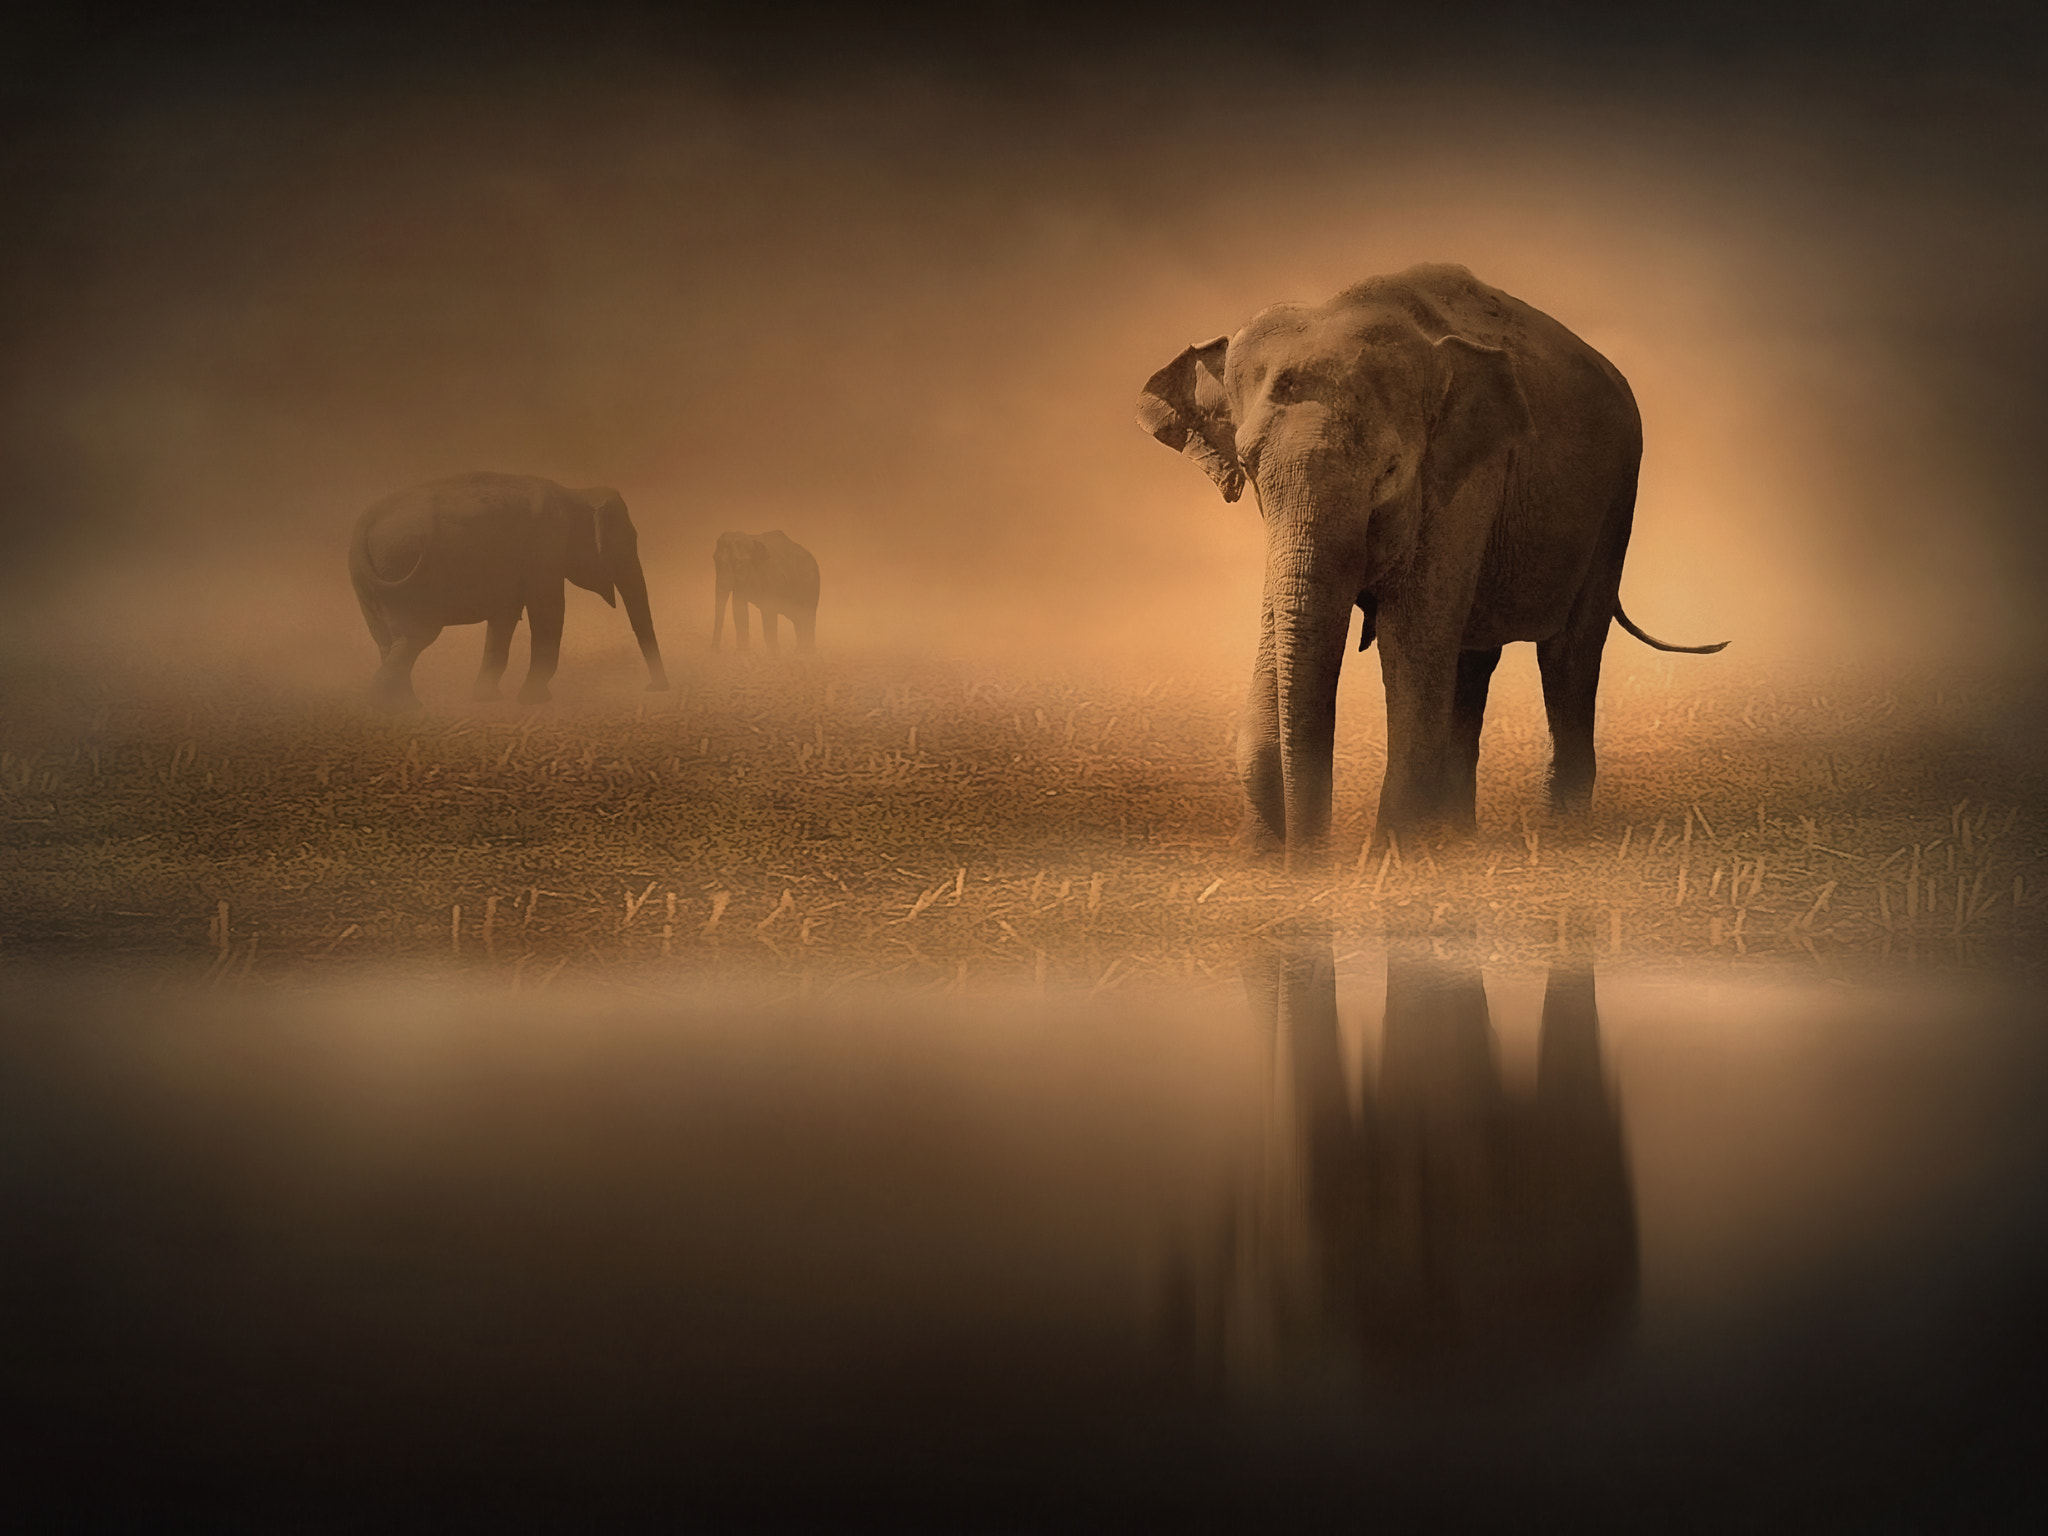 Photograph Elephants in the Mist by Jenny Woodward on 500px